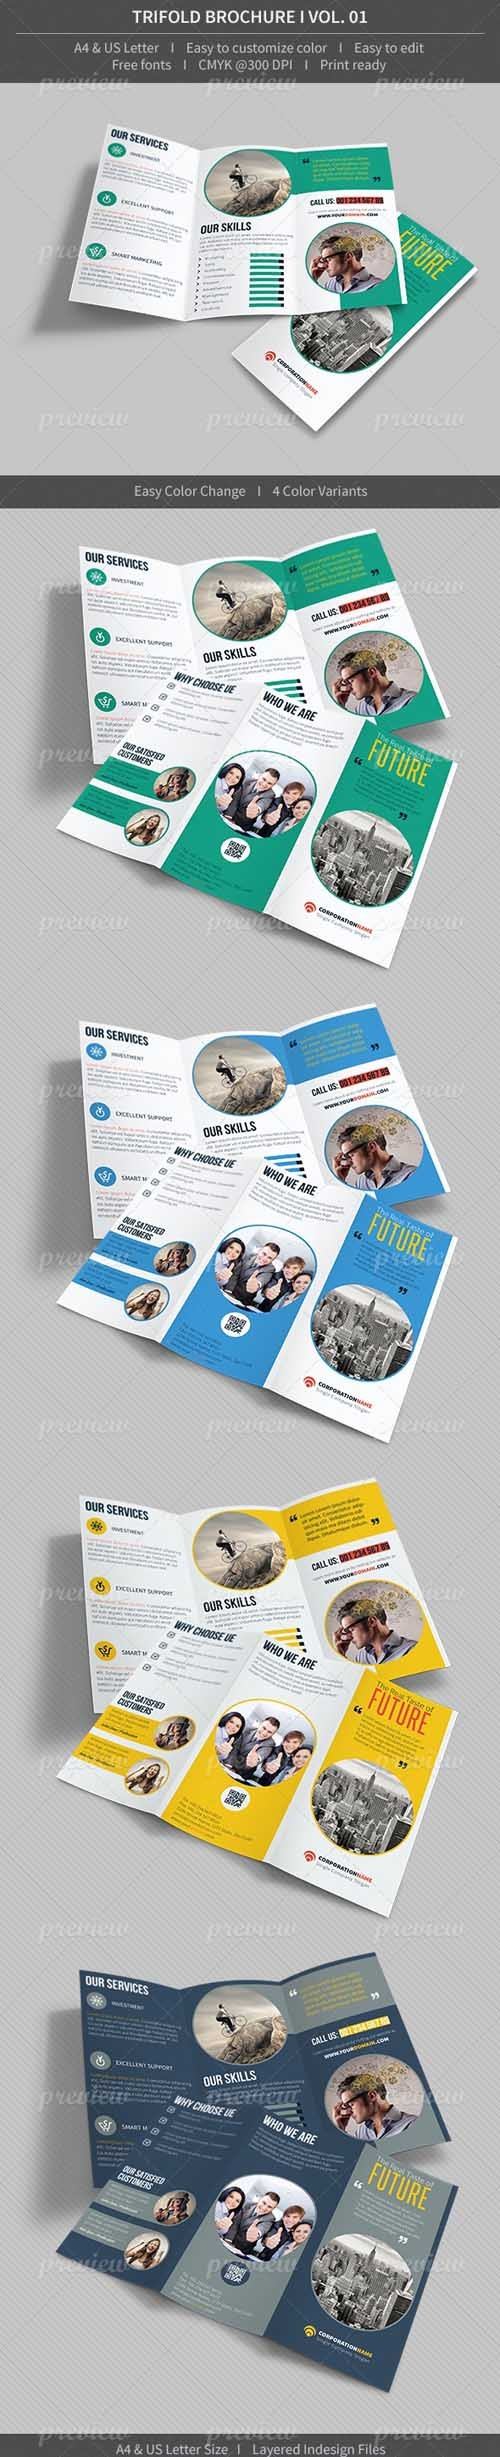 Indesign Trifold Brochure - Volume 01